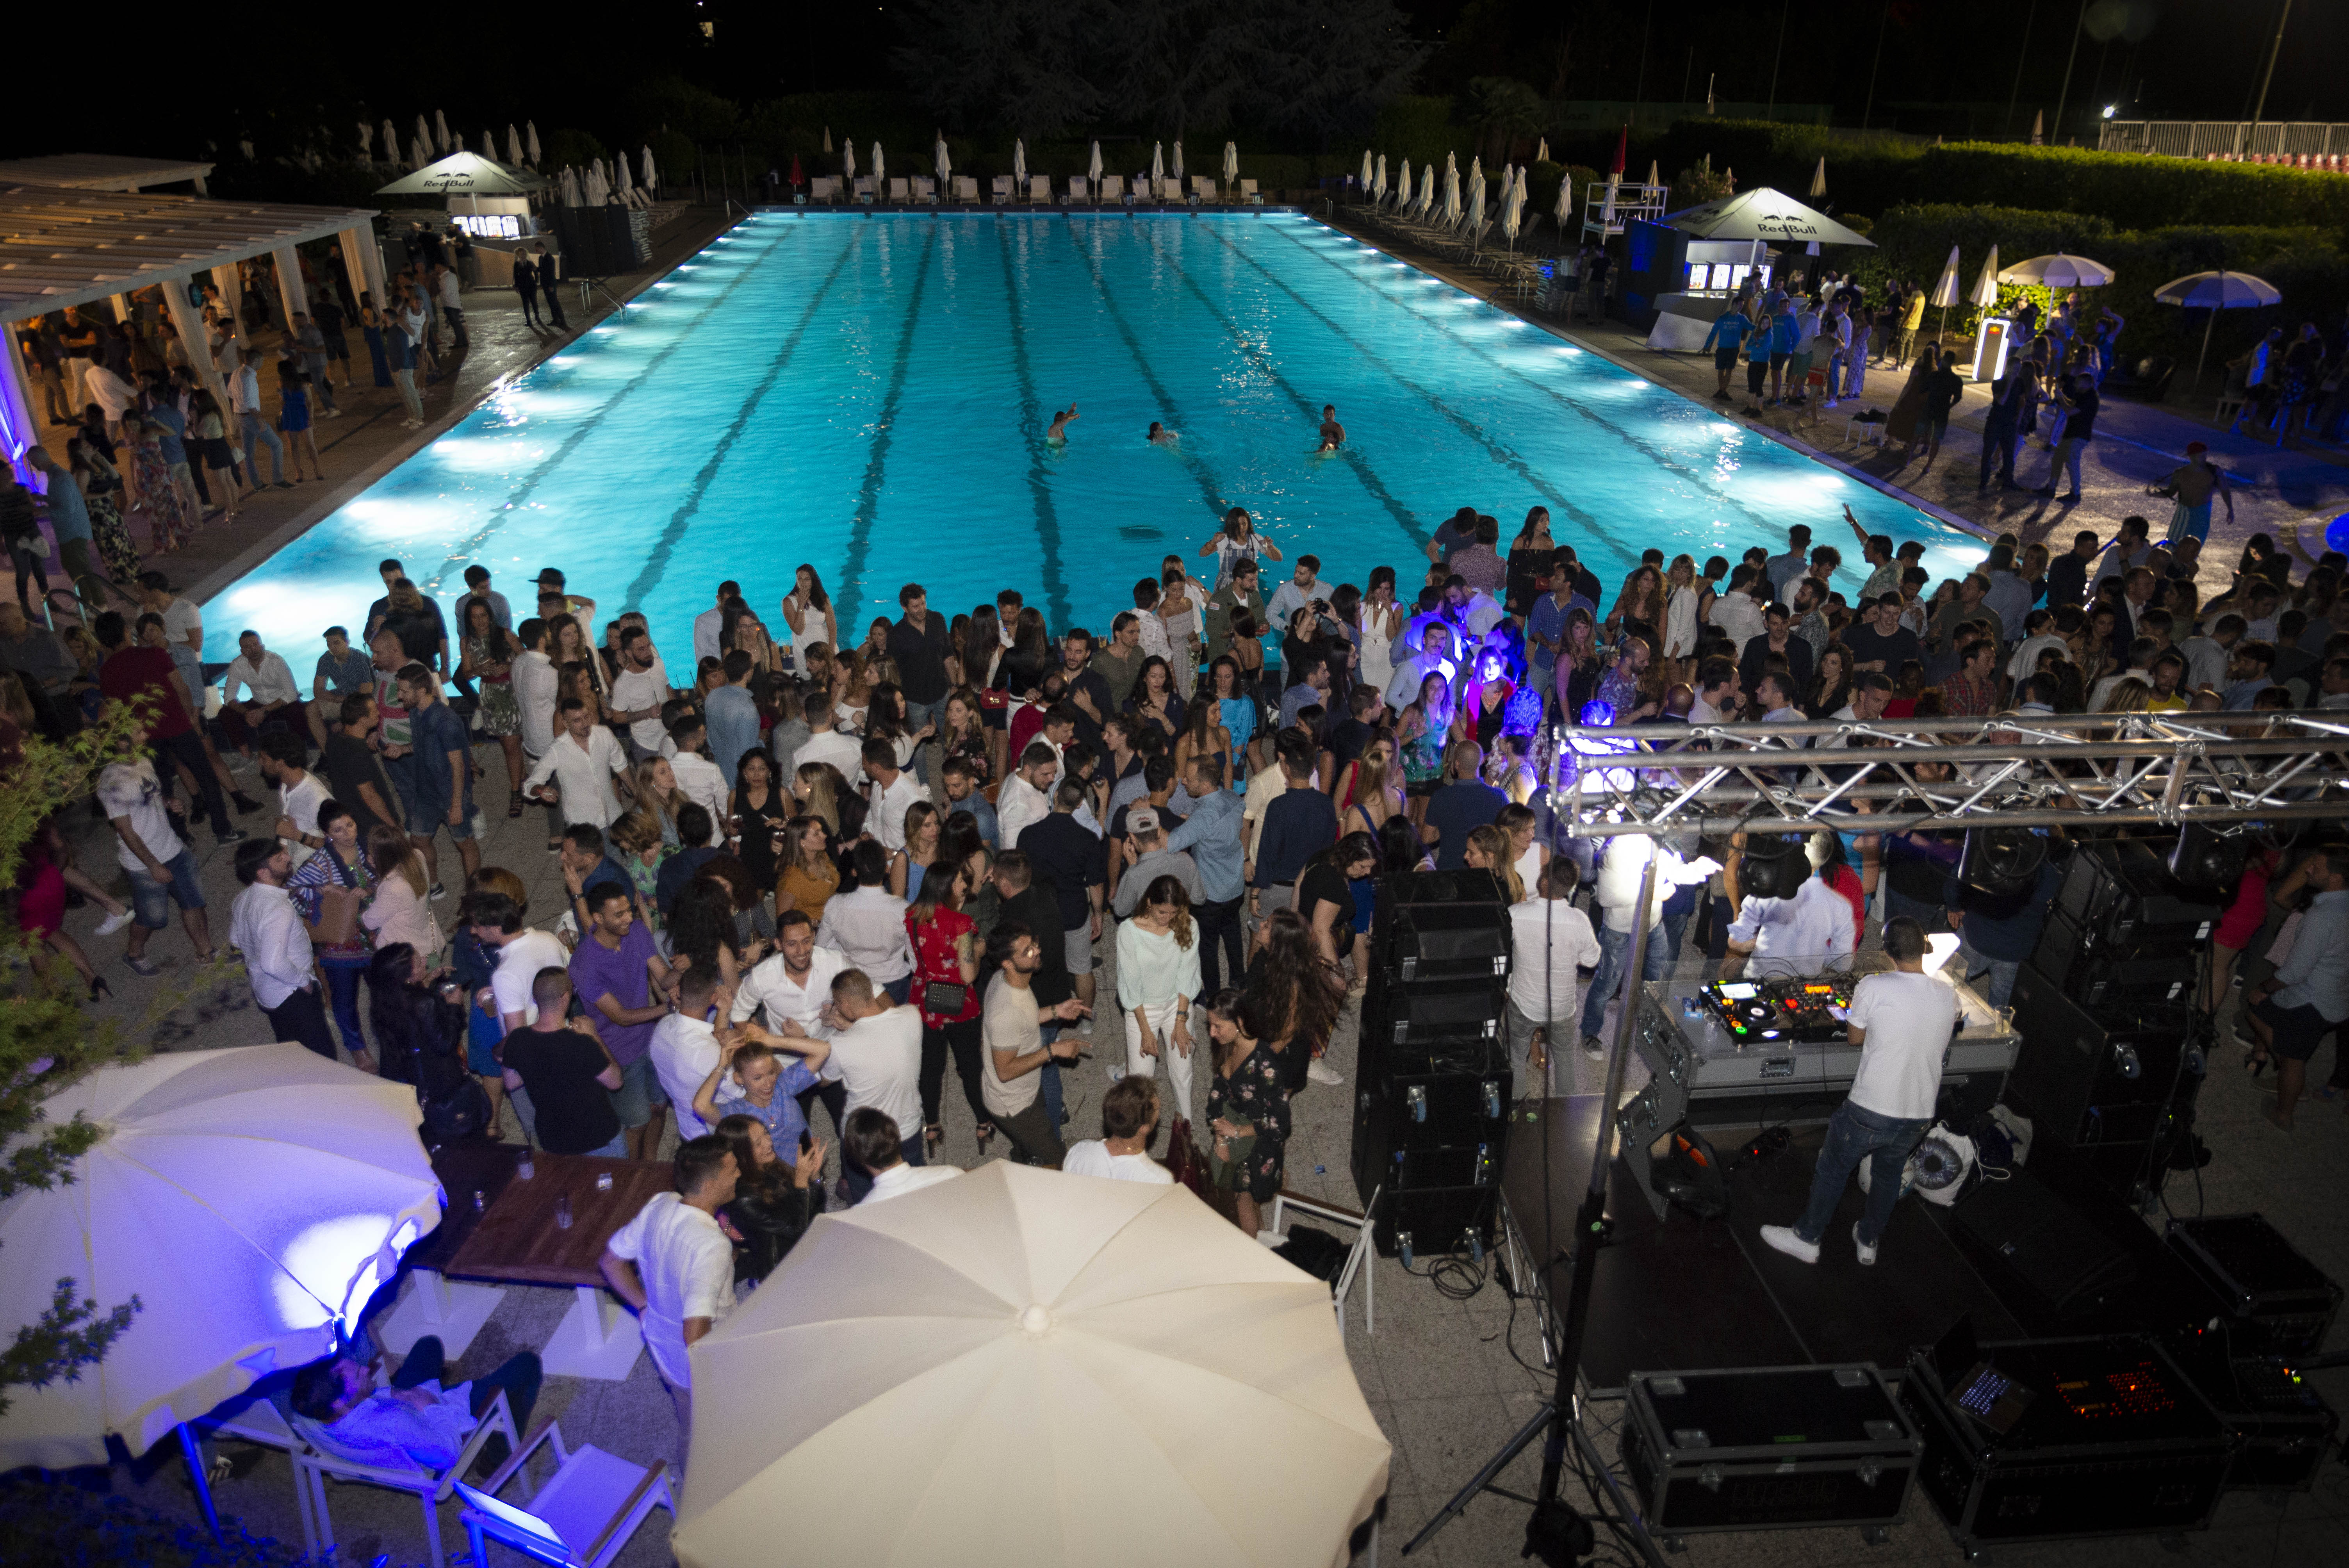 SUMMERTIME POOL PARTY at Harbour Club   YOUparti